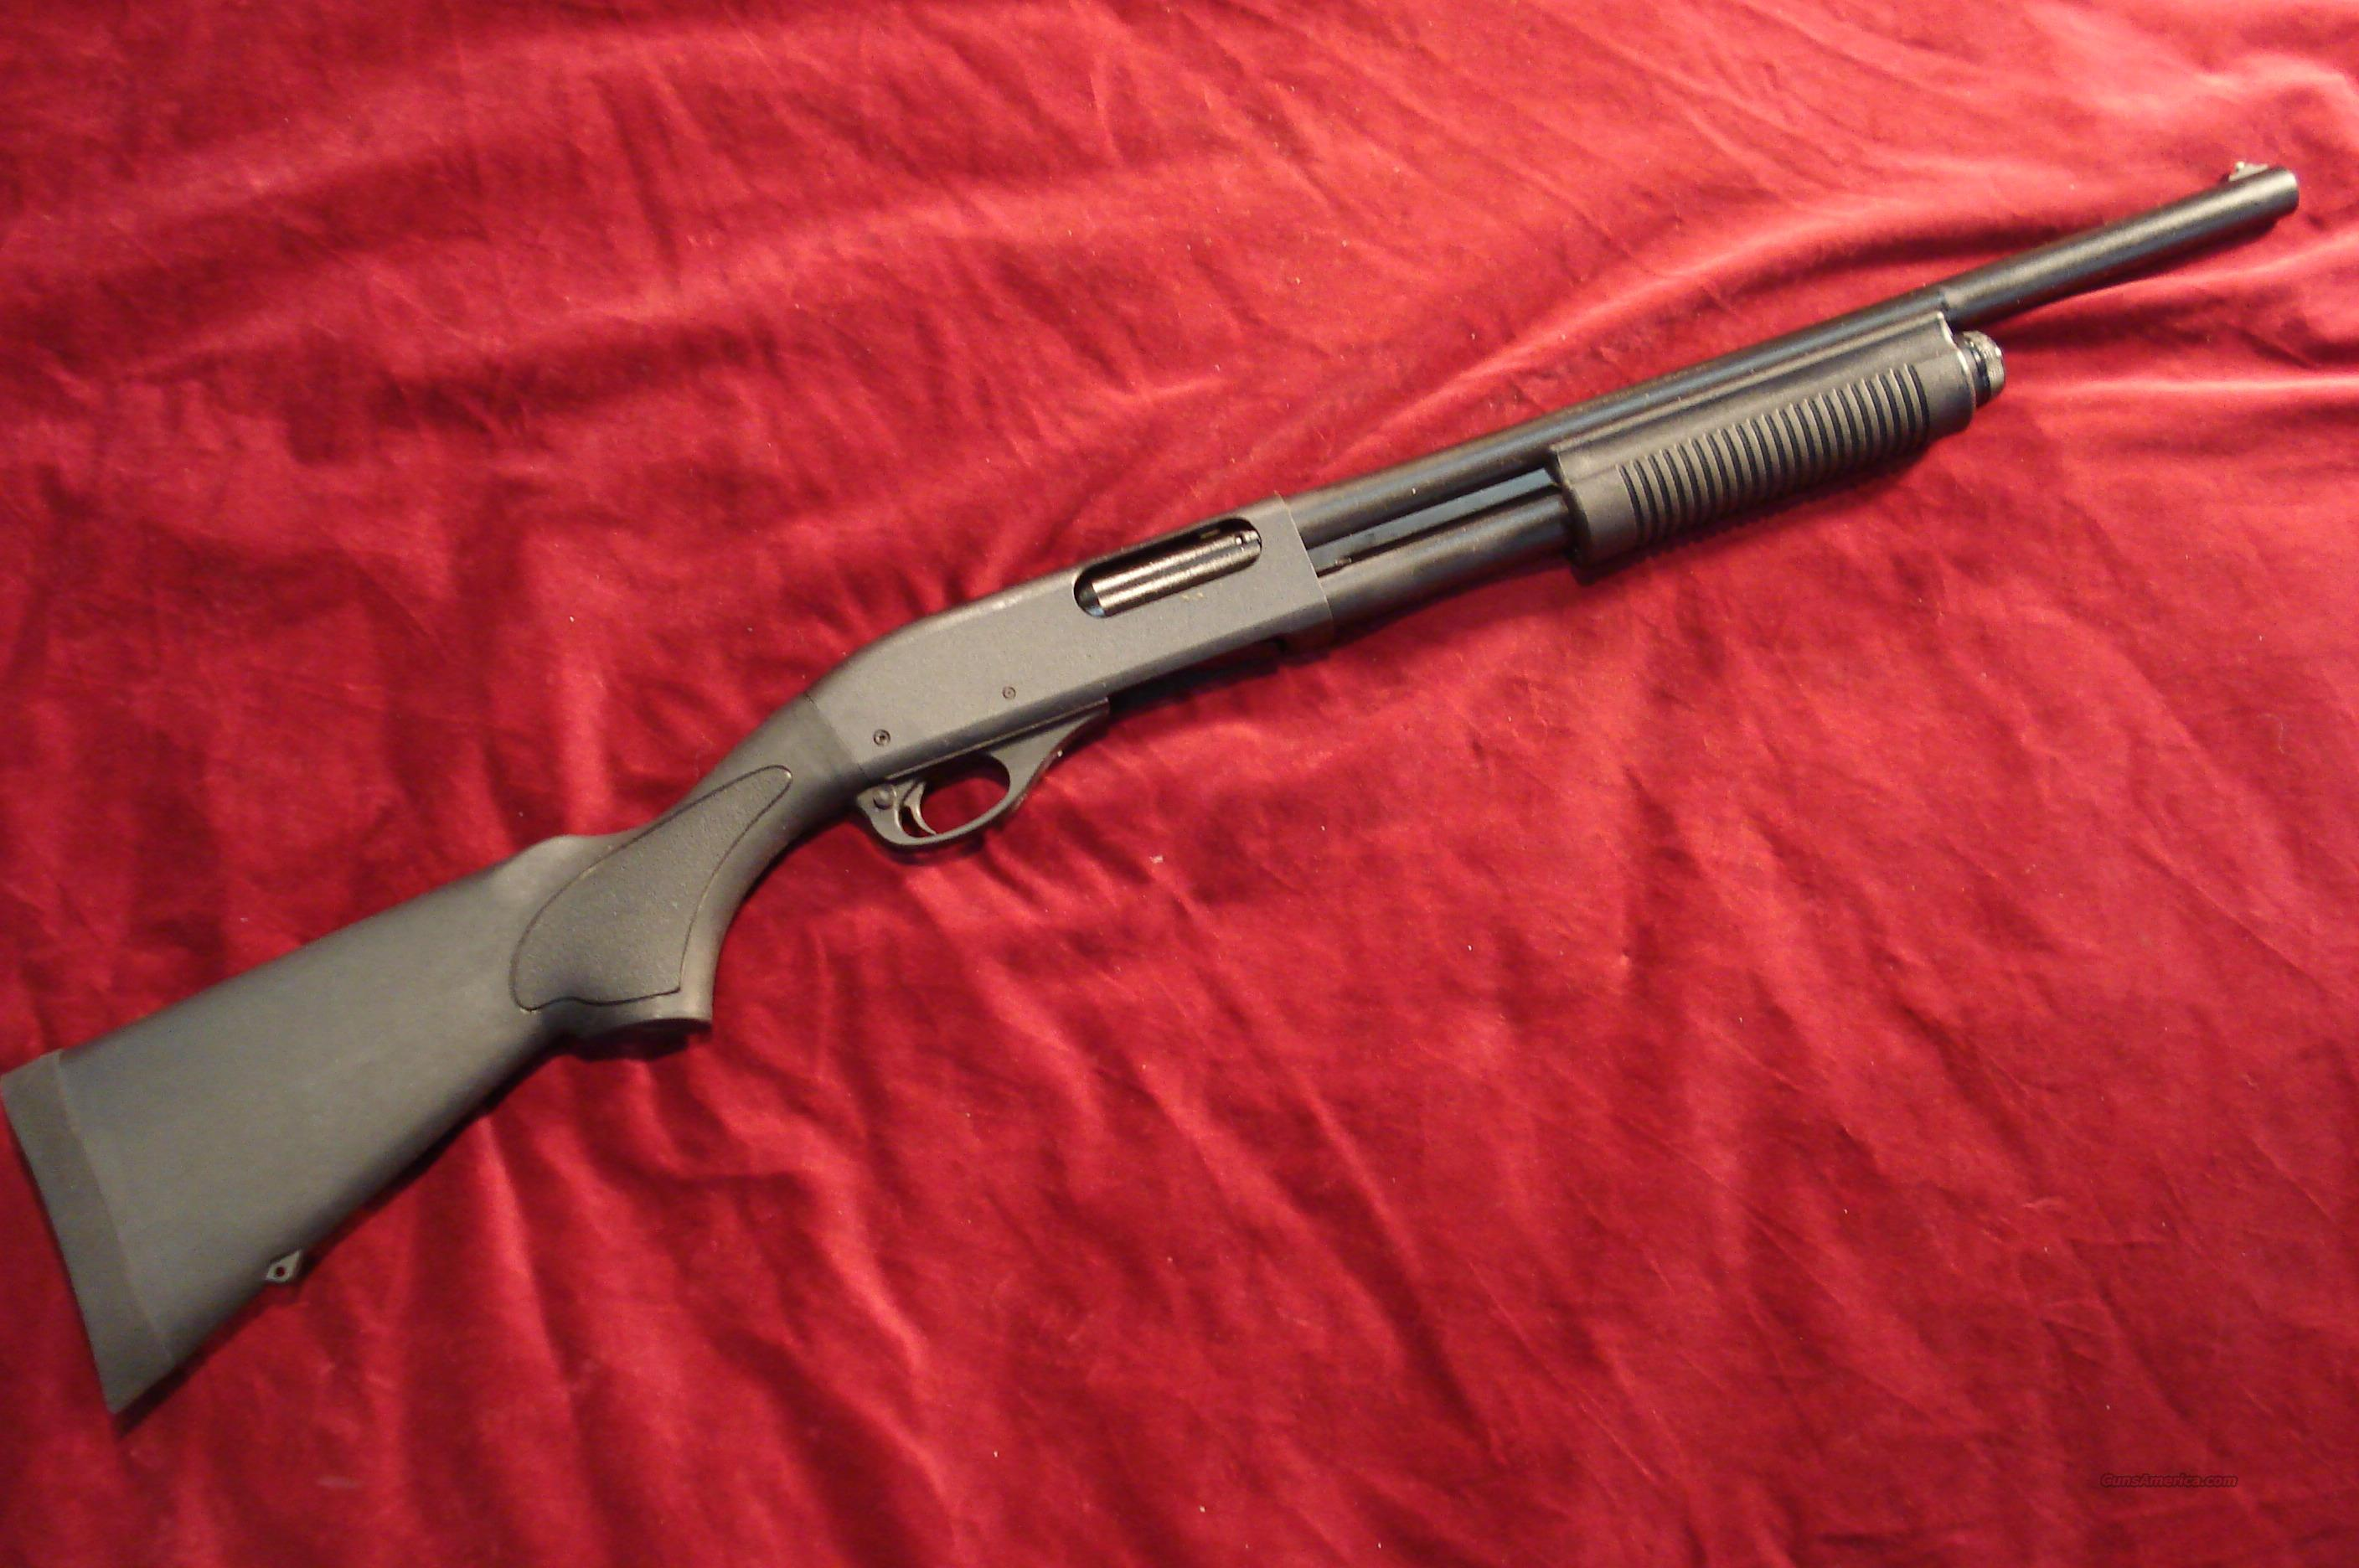 "REMINGTON 870 HD (HOME DEFENSE)12G PUMP ACTION SHOTGUN WITH A 18"" BARREL, 3"" CHAMBER, CYLINDER BORE,  BEAD FRONT SIGHT, SYNTHETIC STOCK AND FOREARM, MATTE BLACK ON ALL METAL NEW  Guns > Shotguns > Remington Shotguns  > Pump > Tactical"